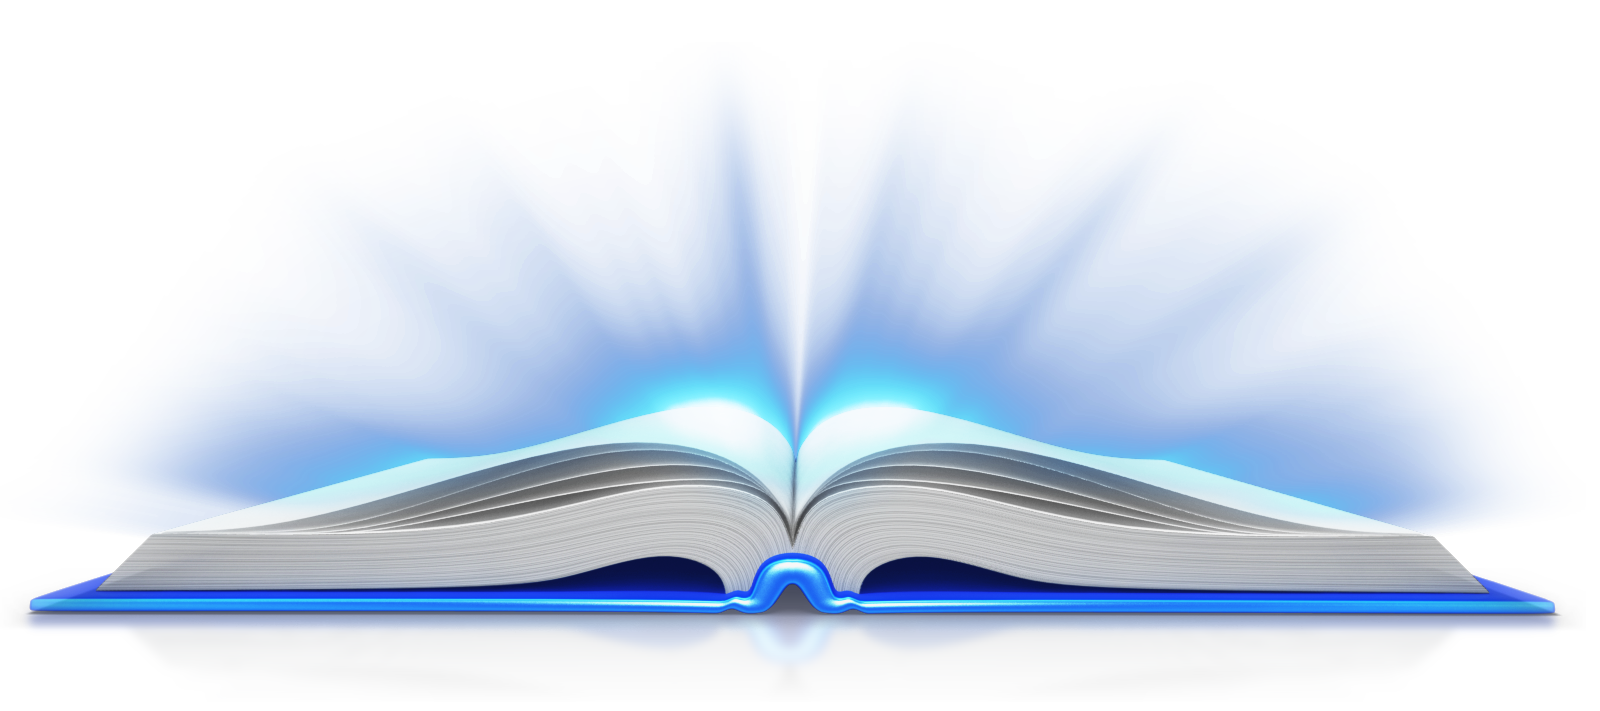 Open books png. Book transparent images pluspng